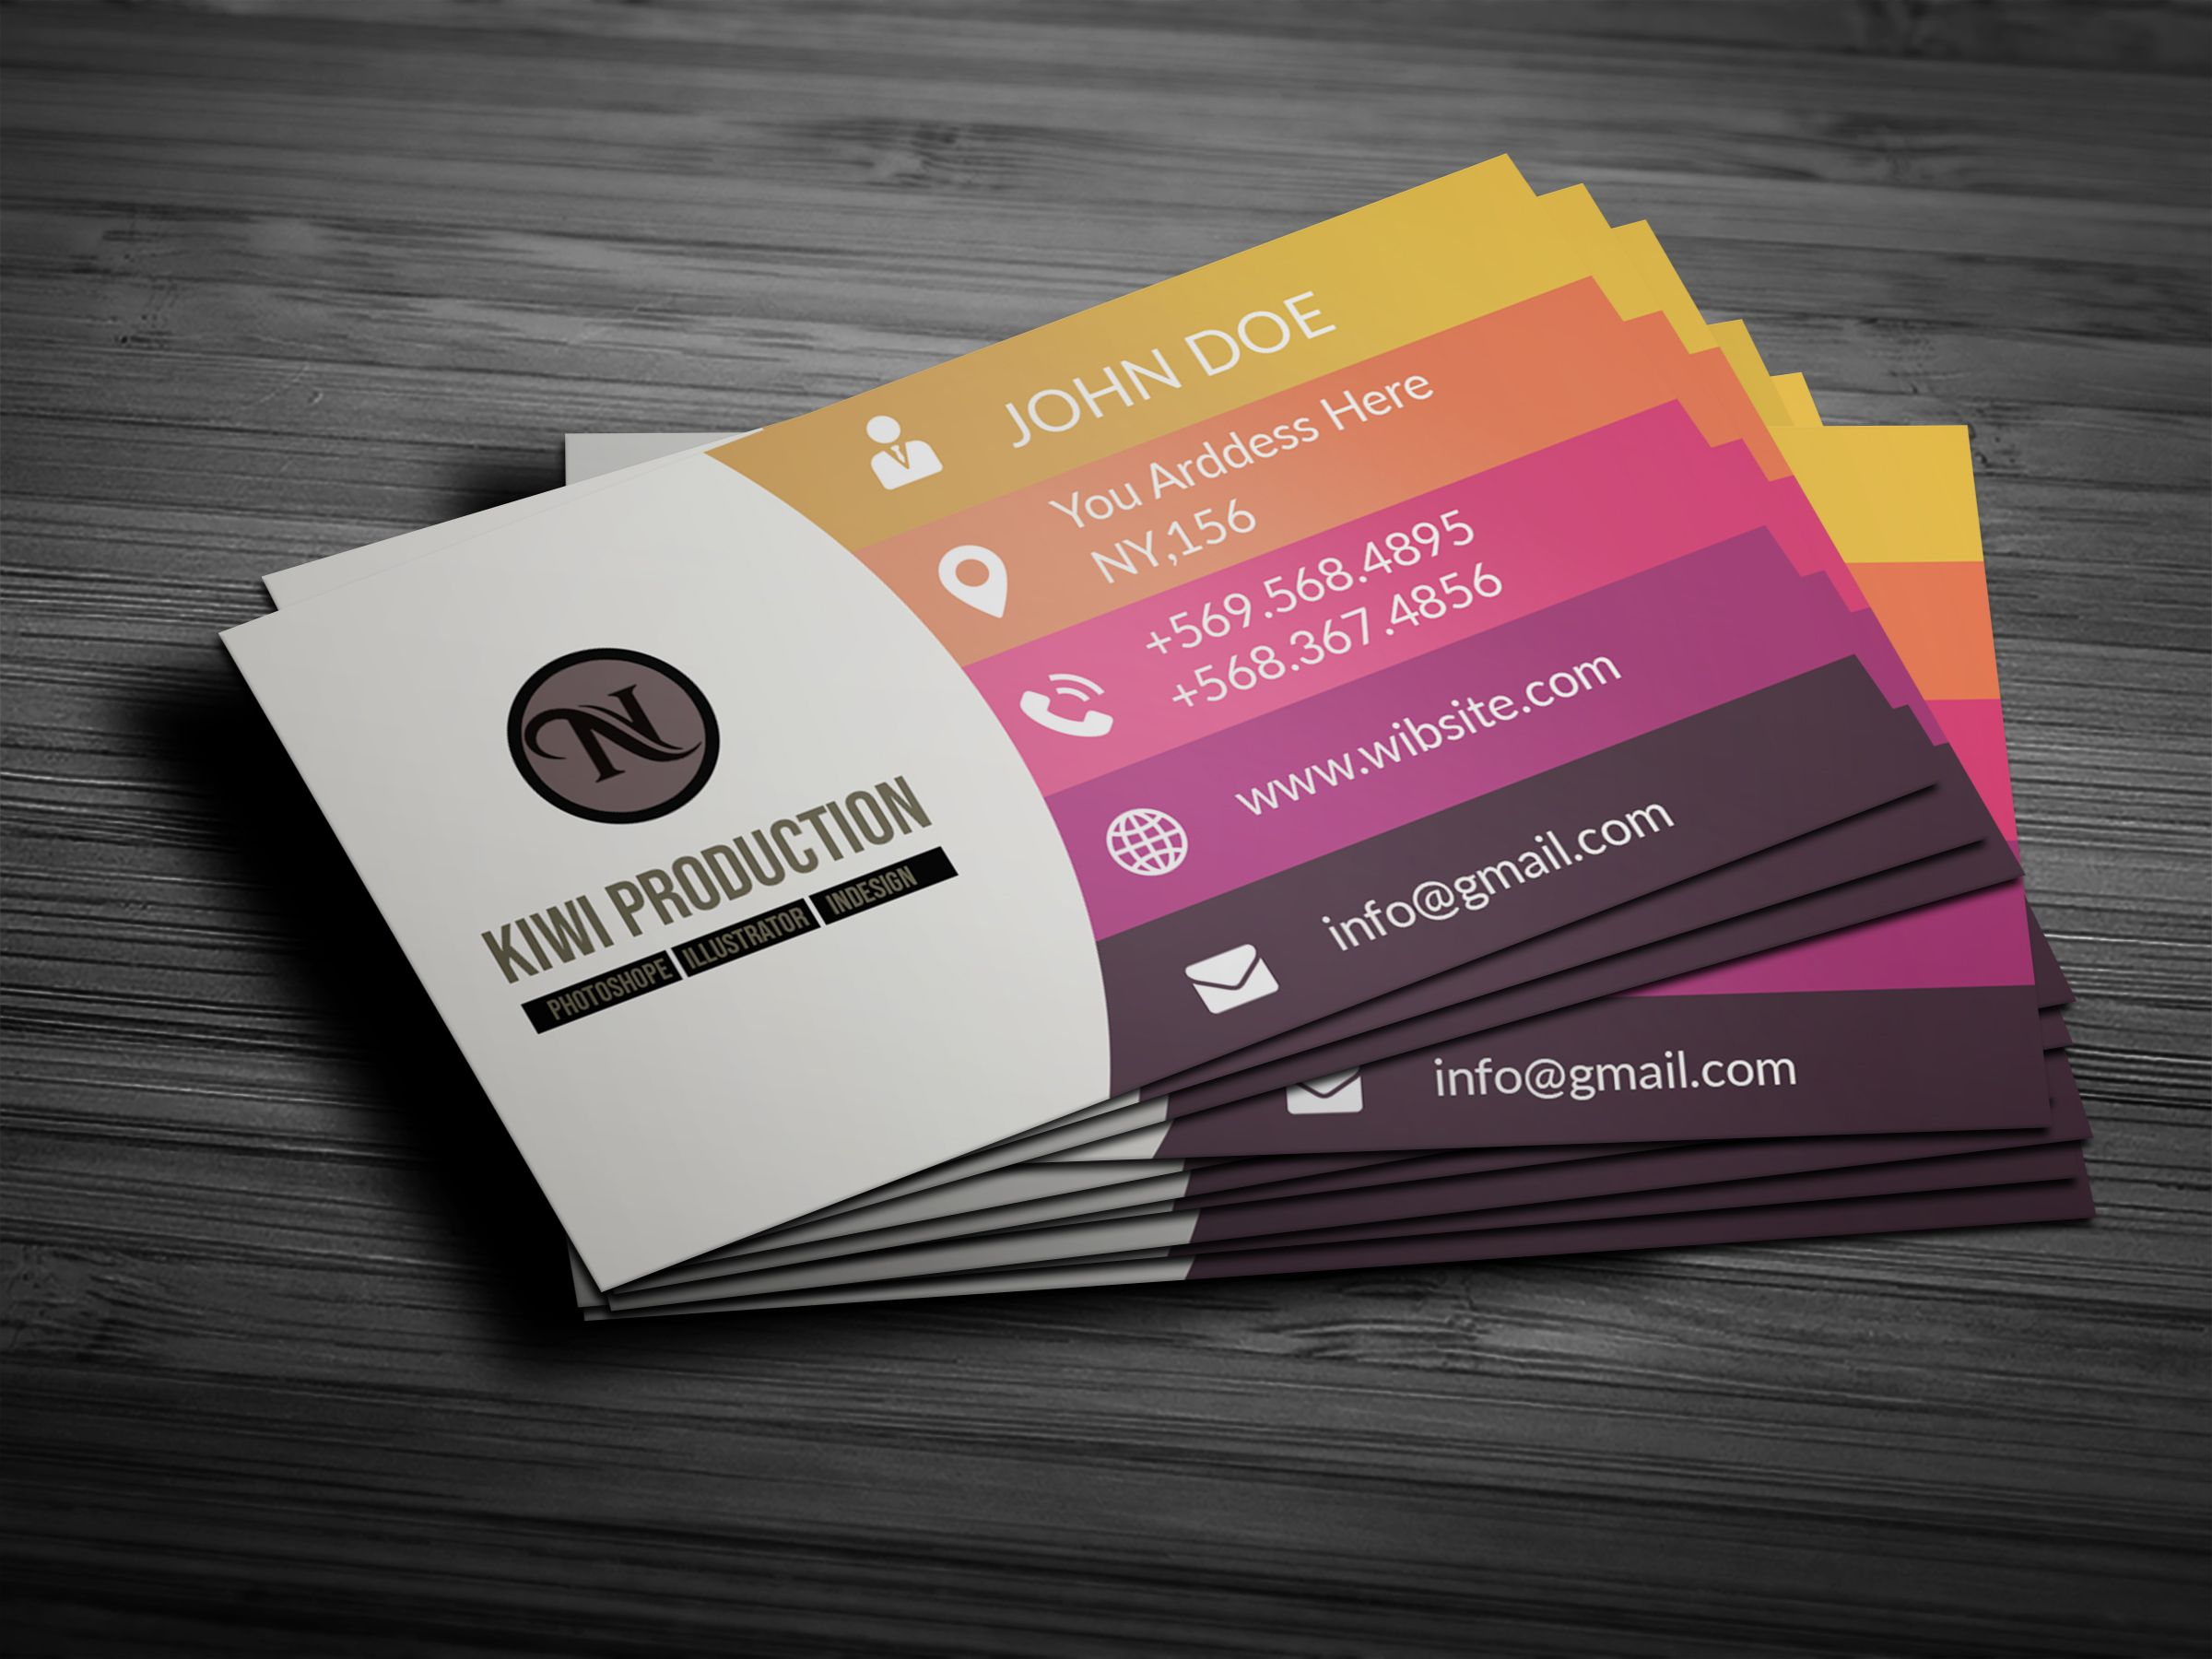 Wahid Designer I Will Do Professional Business Card Design In 2 Hrs For 5 On Professional Business Card Design Business Card Psd Professional Business Cards